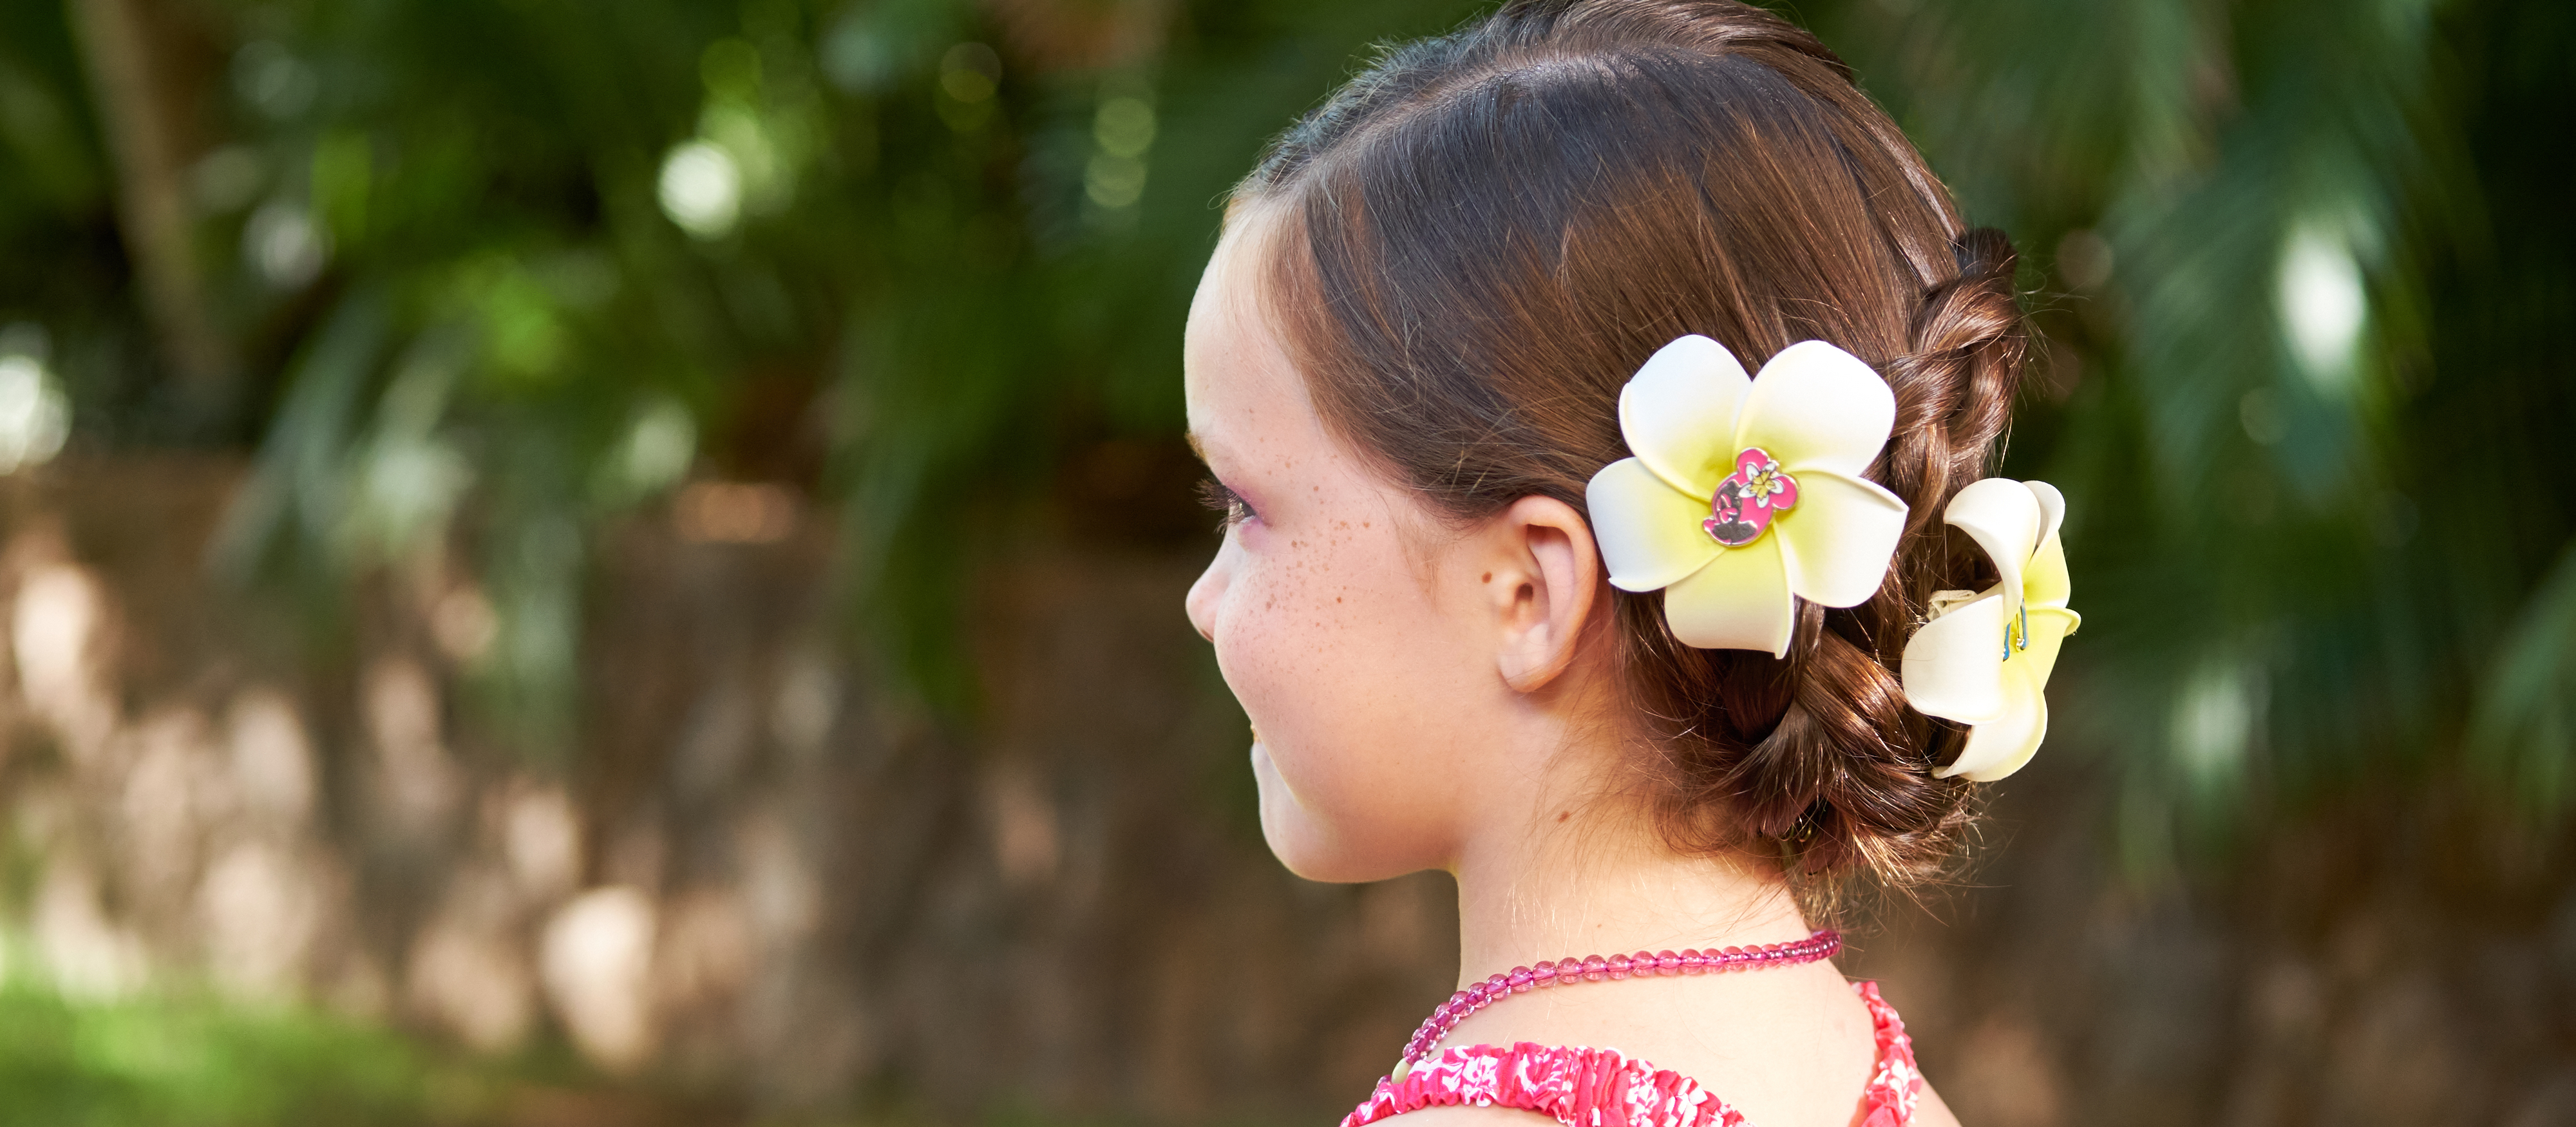 A ¾ profile of a young girl's head with flower clips on the back of her hair.